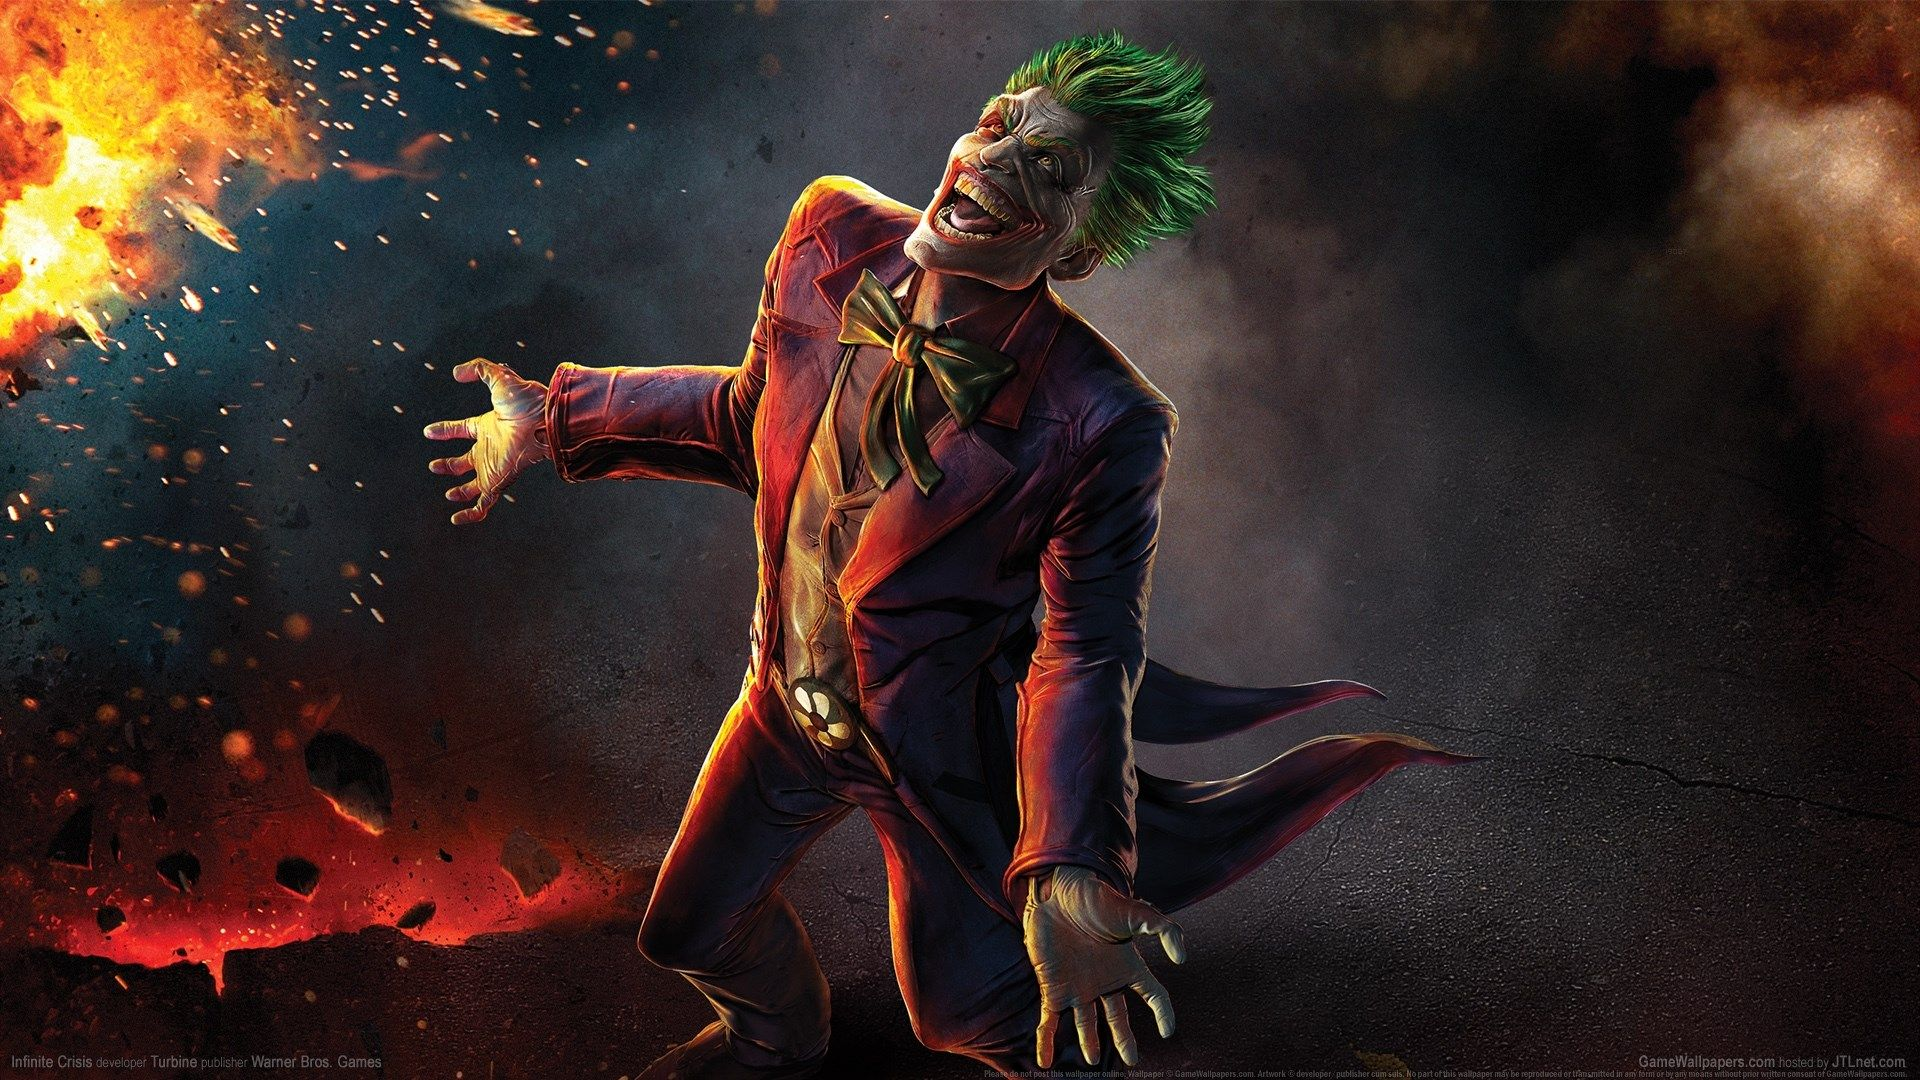 infinite crisis Full HD Background 1920x1080 (With